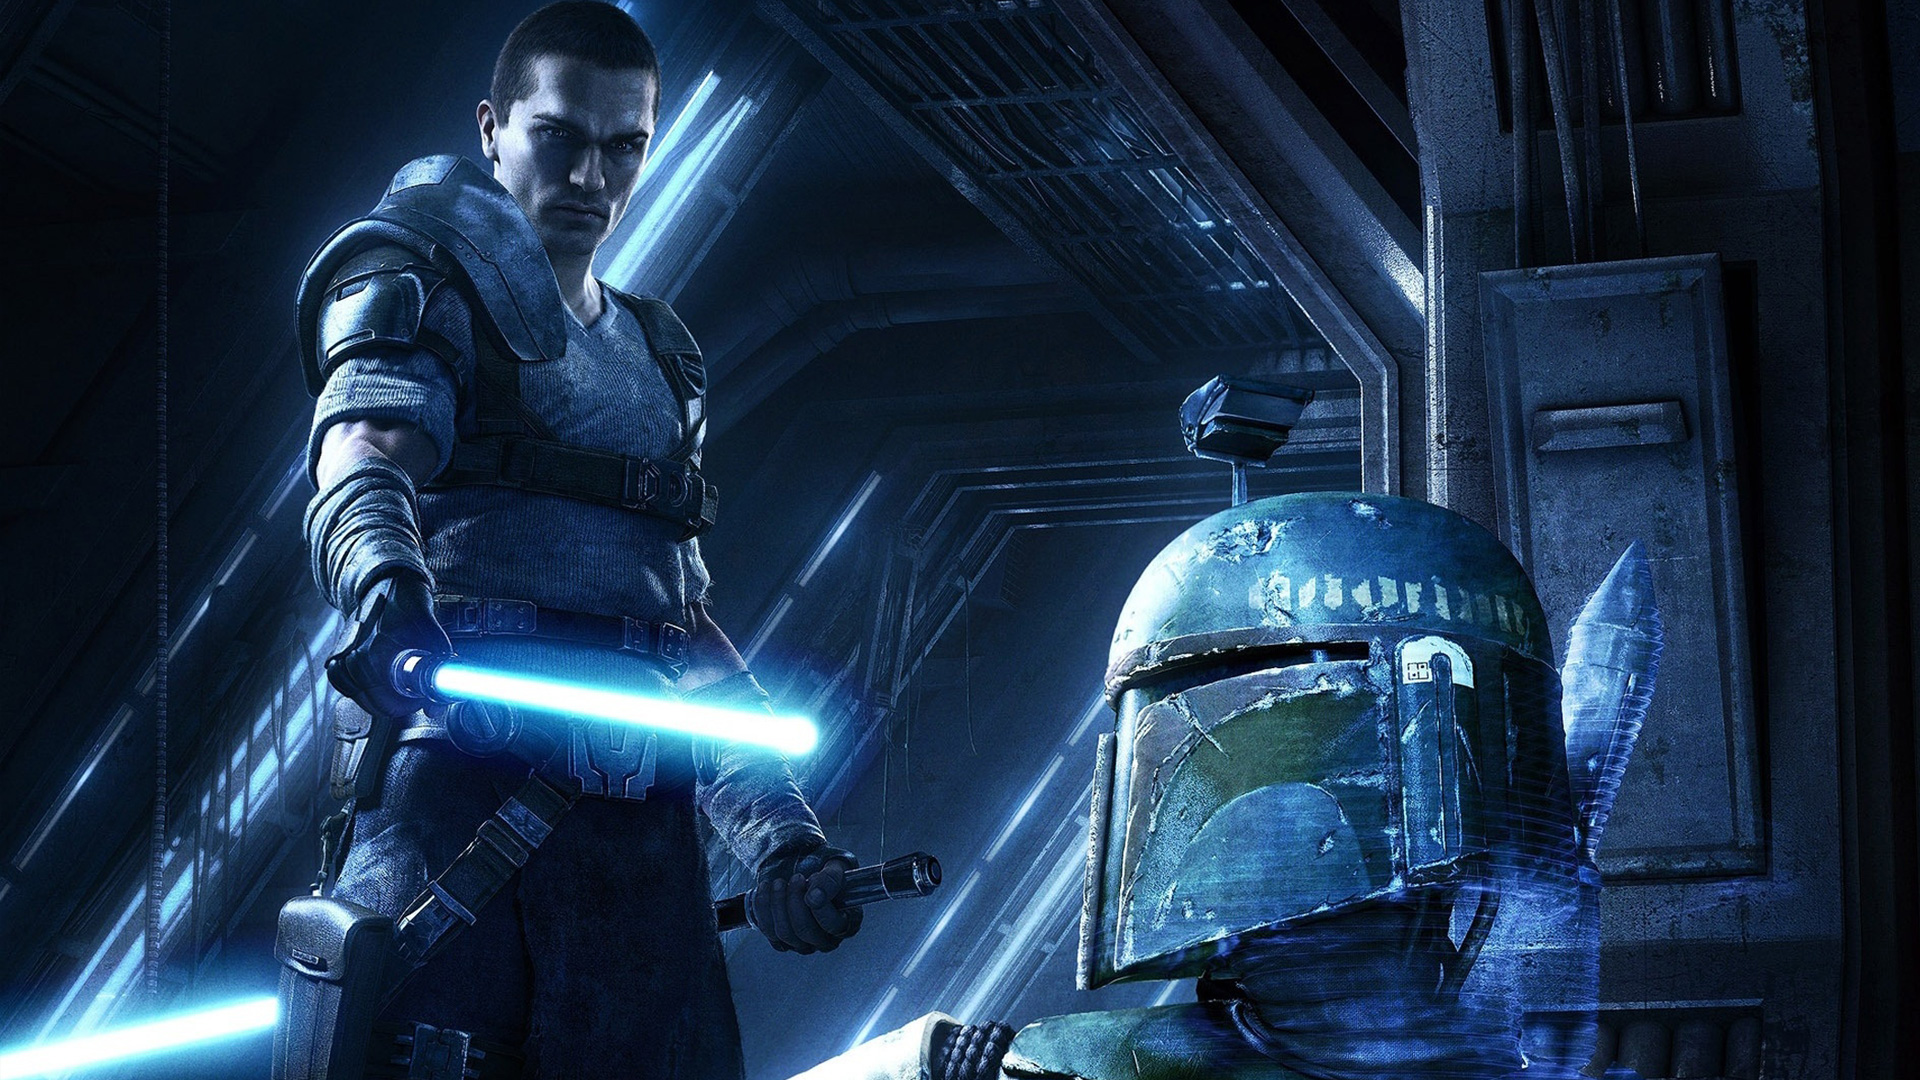 Free Star Wars: The Force Unleashed II Wallpaper in 1920x1080